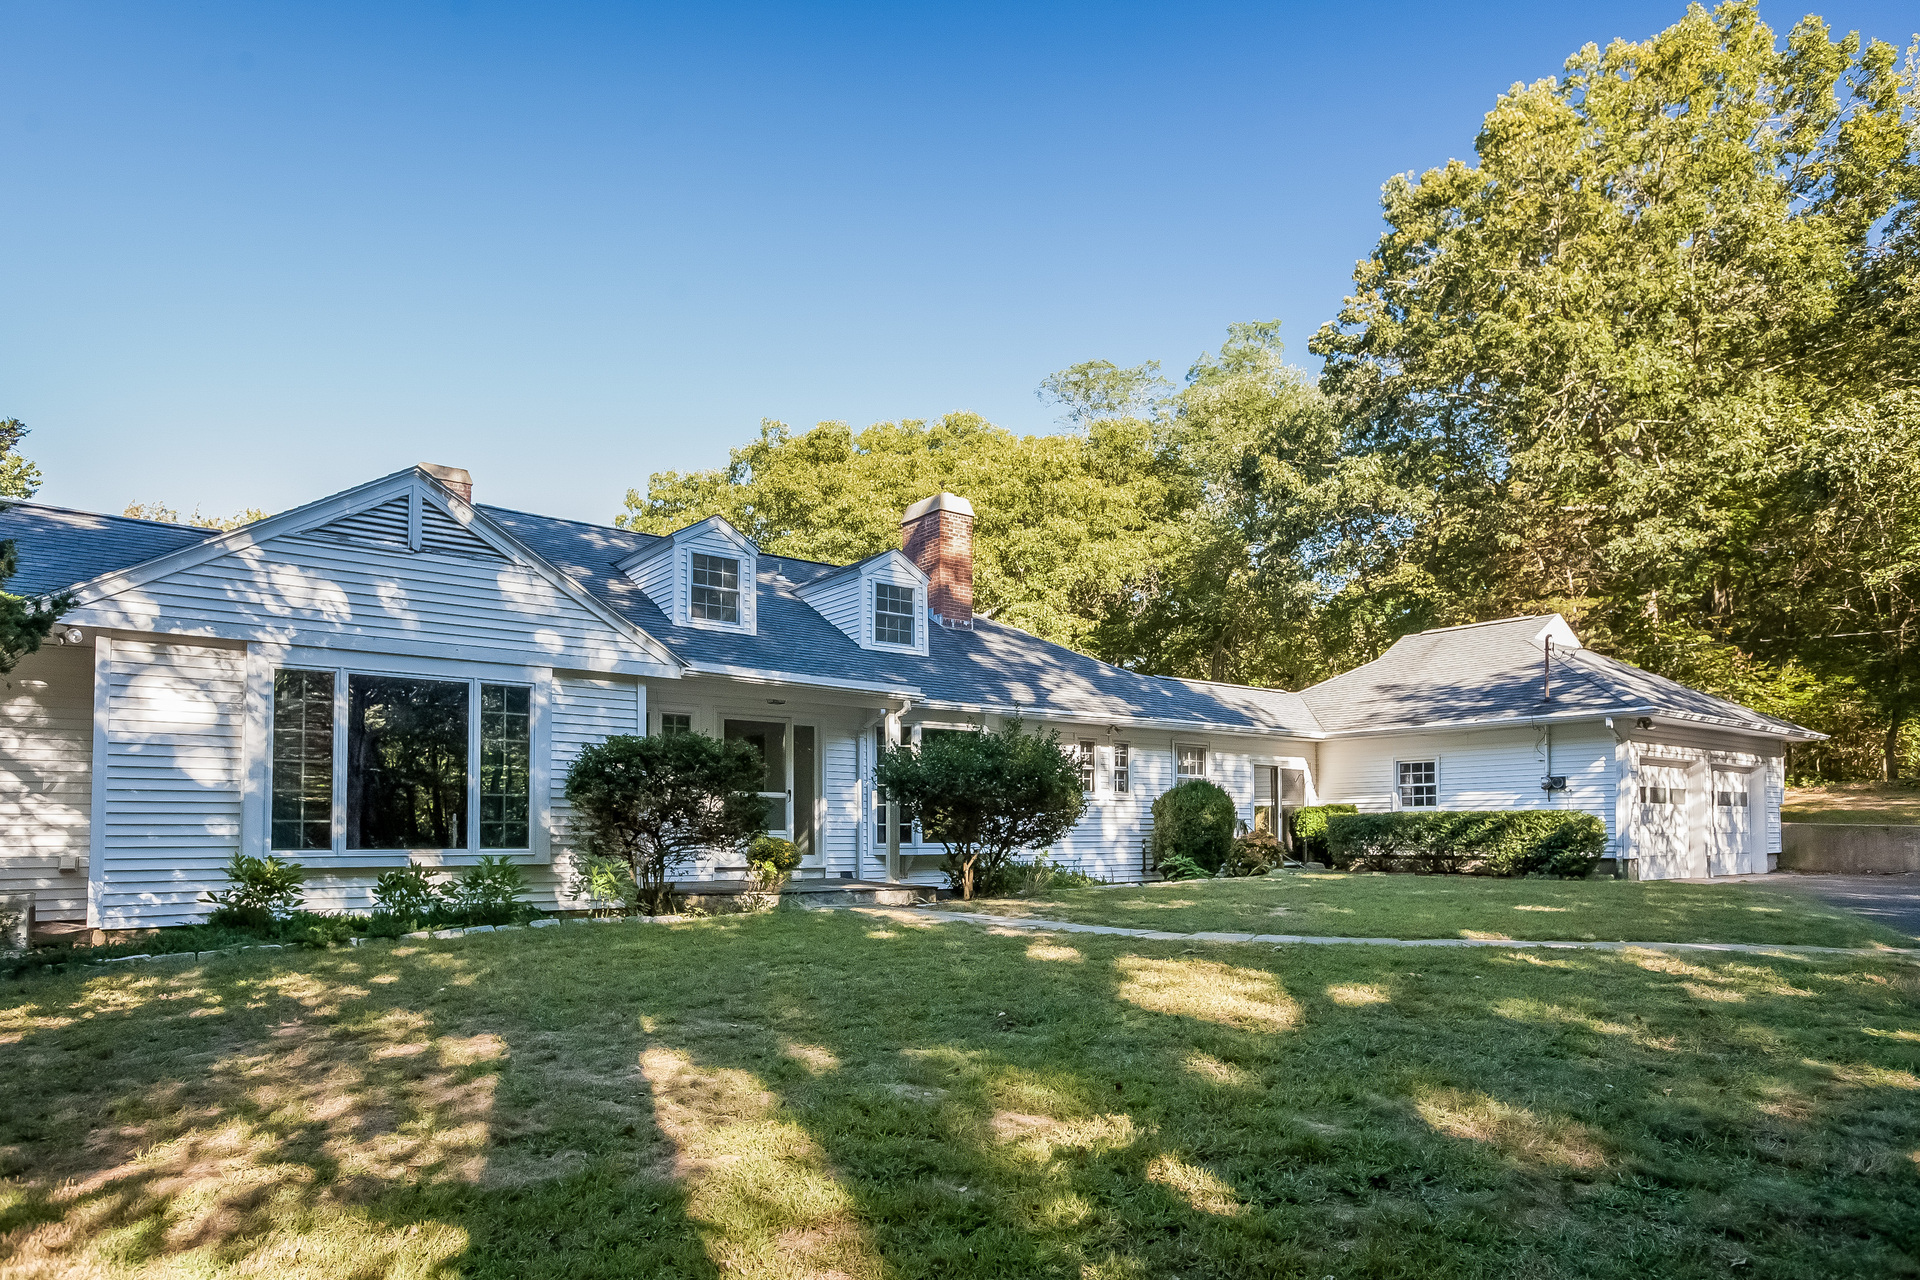 Casa Unifamiliar por un Venta en Fabulous Water Views 66 Otter Cove Drive Old Saybrook, Connecticut 06475 Estados Unidos